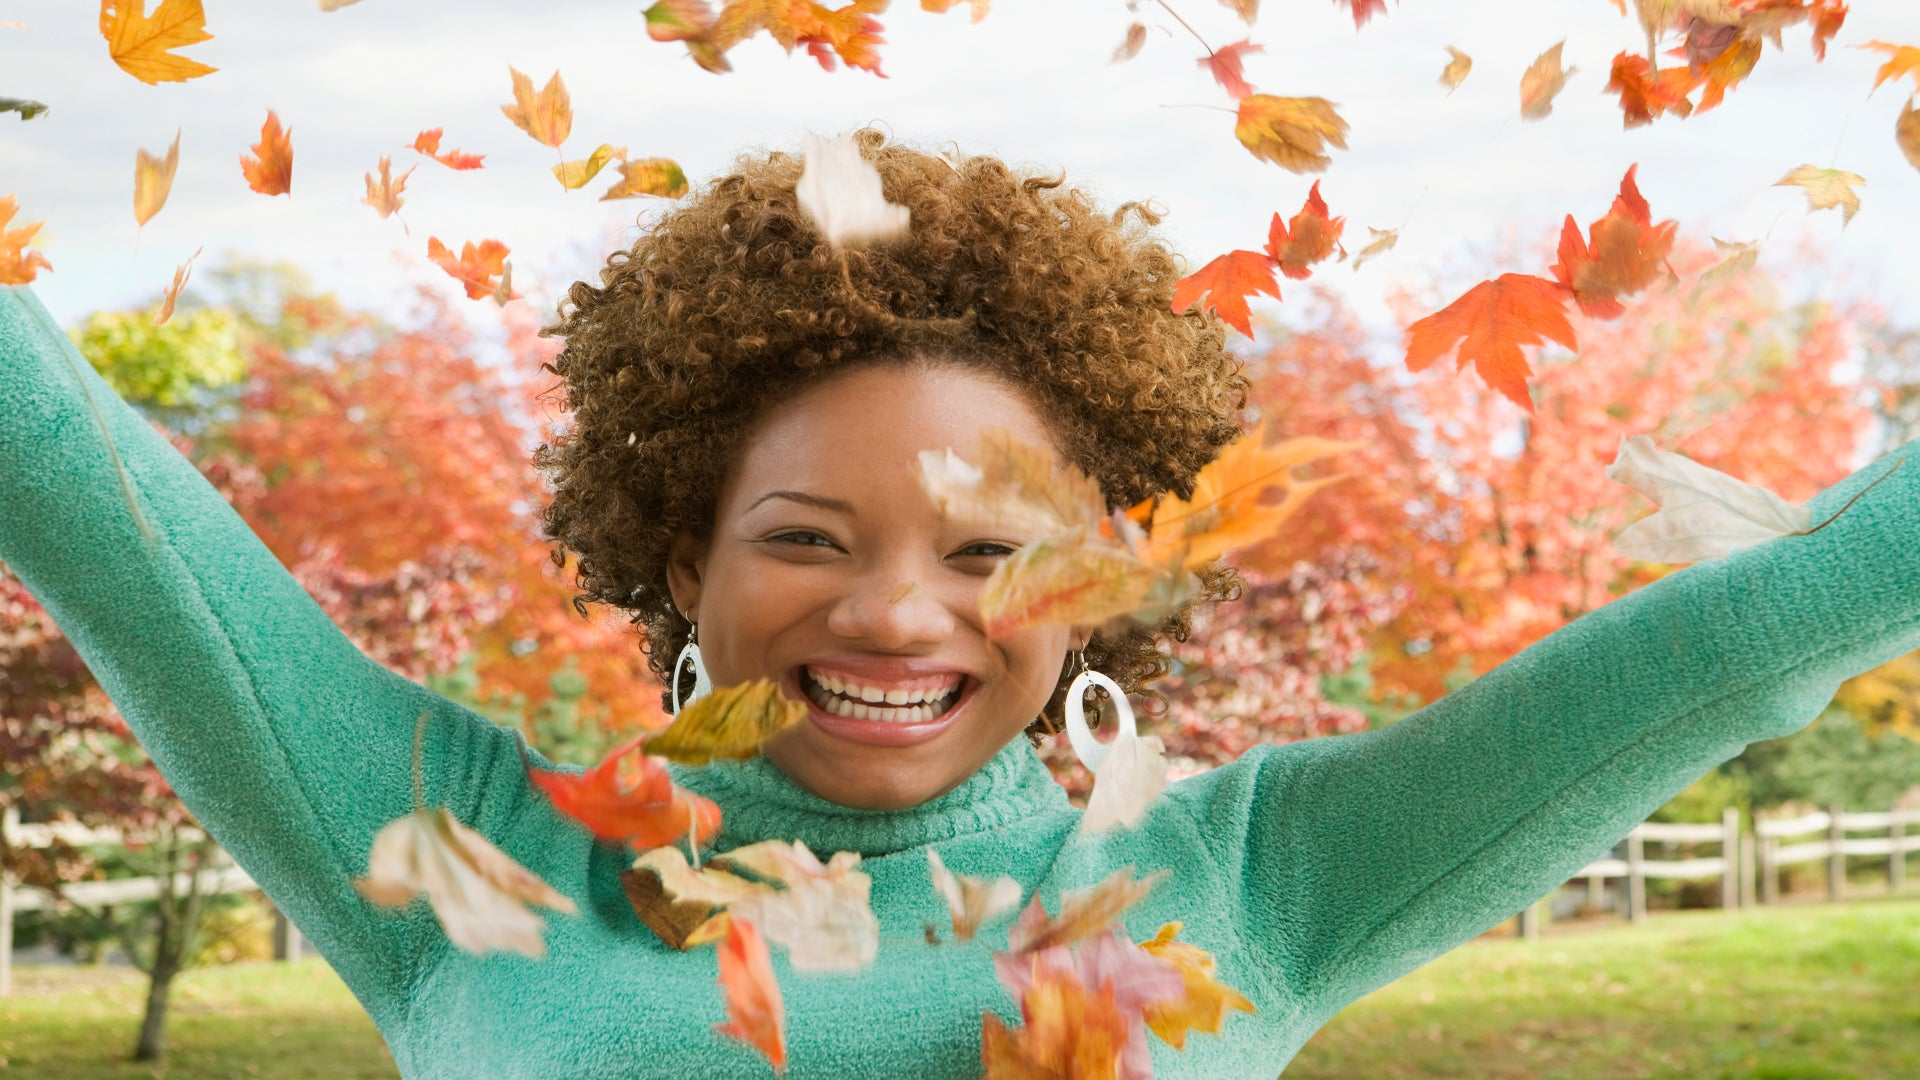 Girlfriends: 8 Fall Outings to Try with the Girls